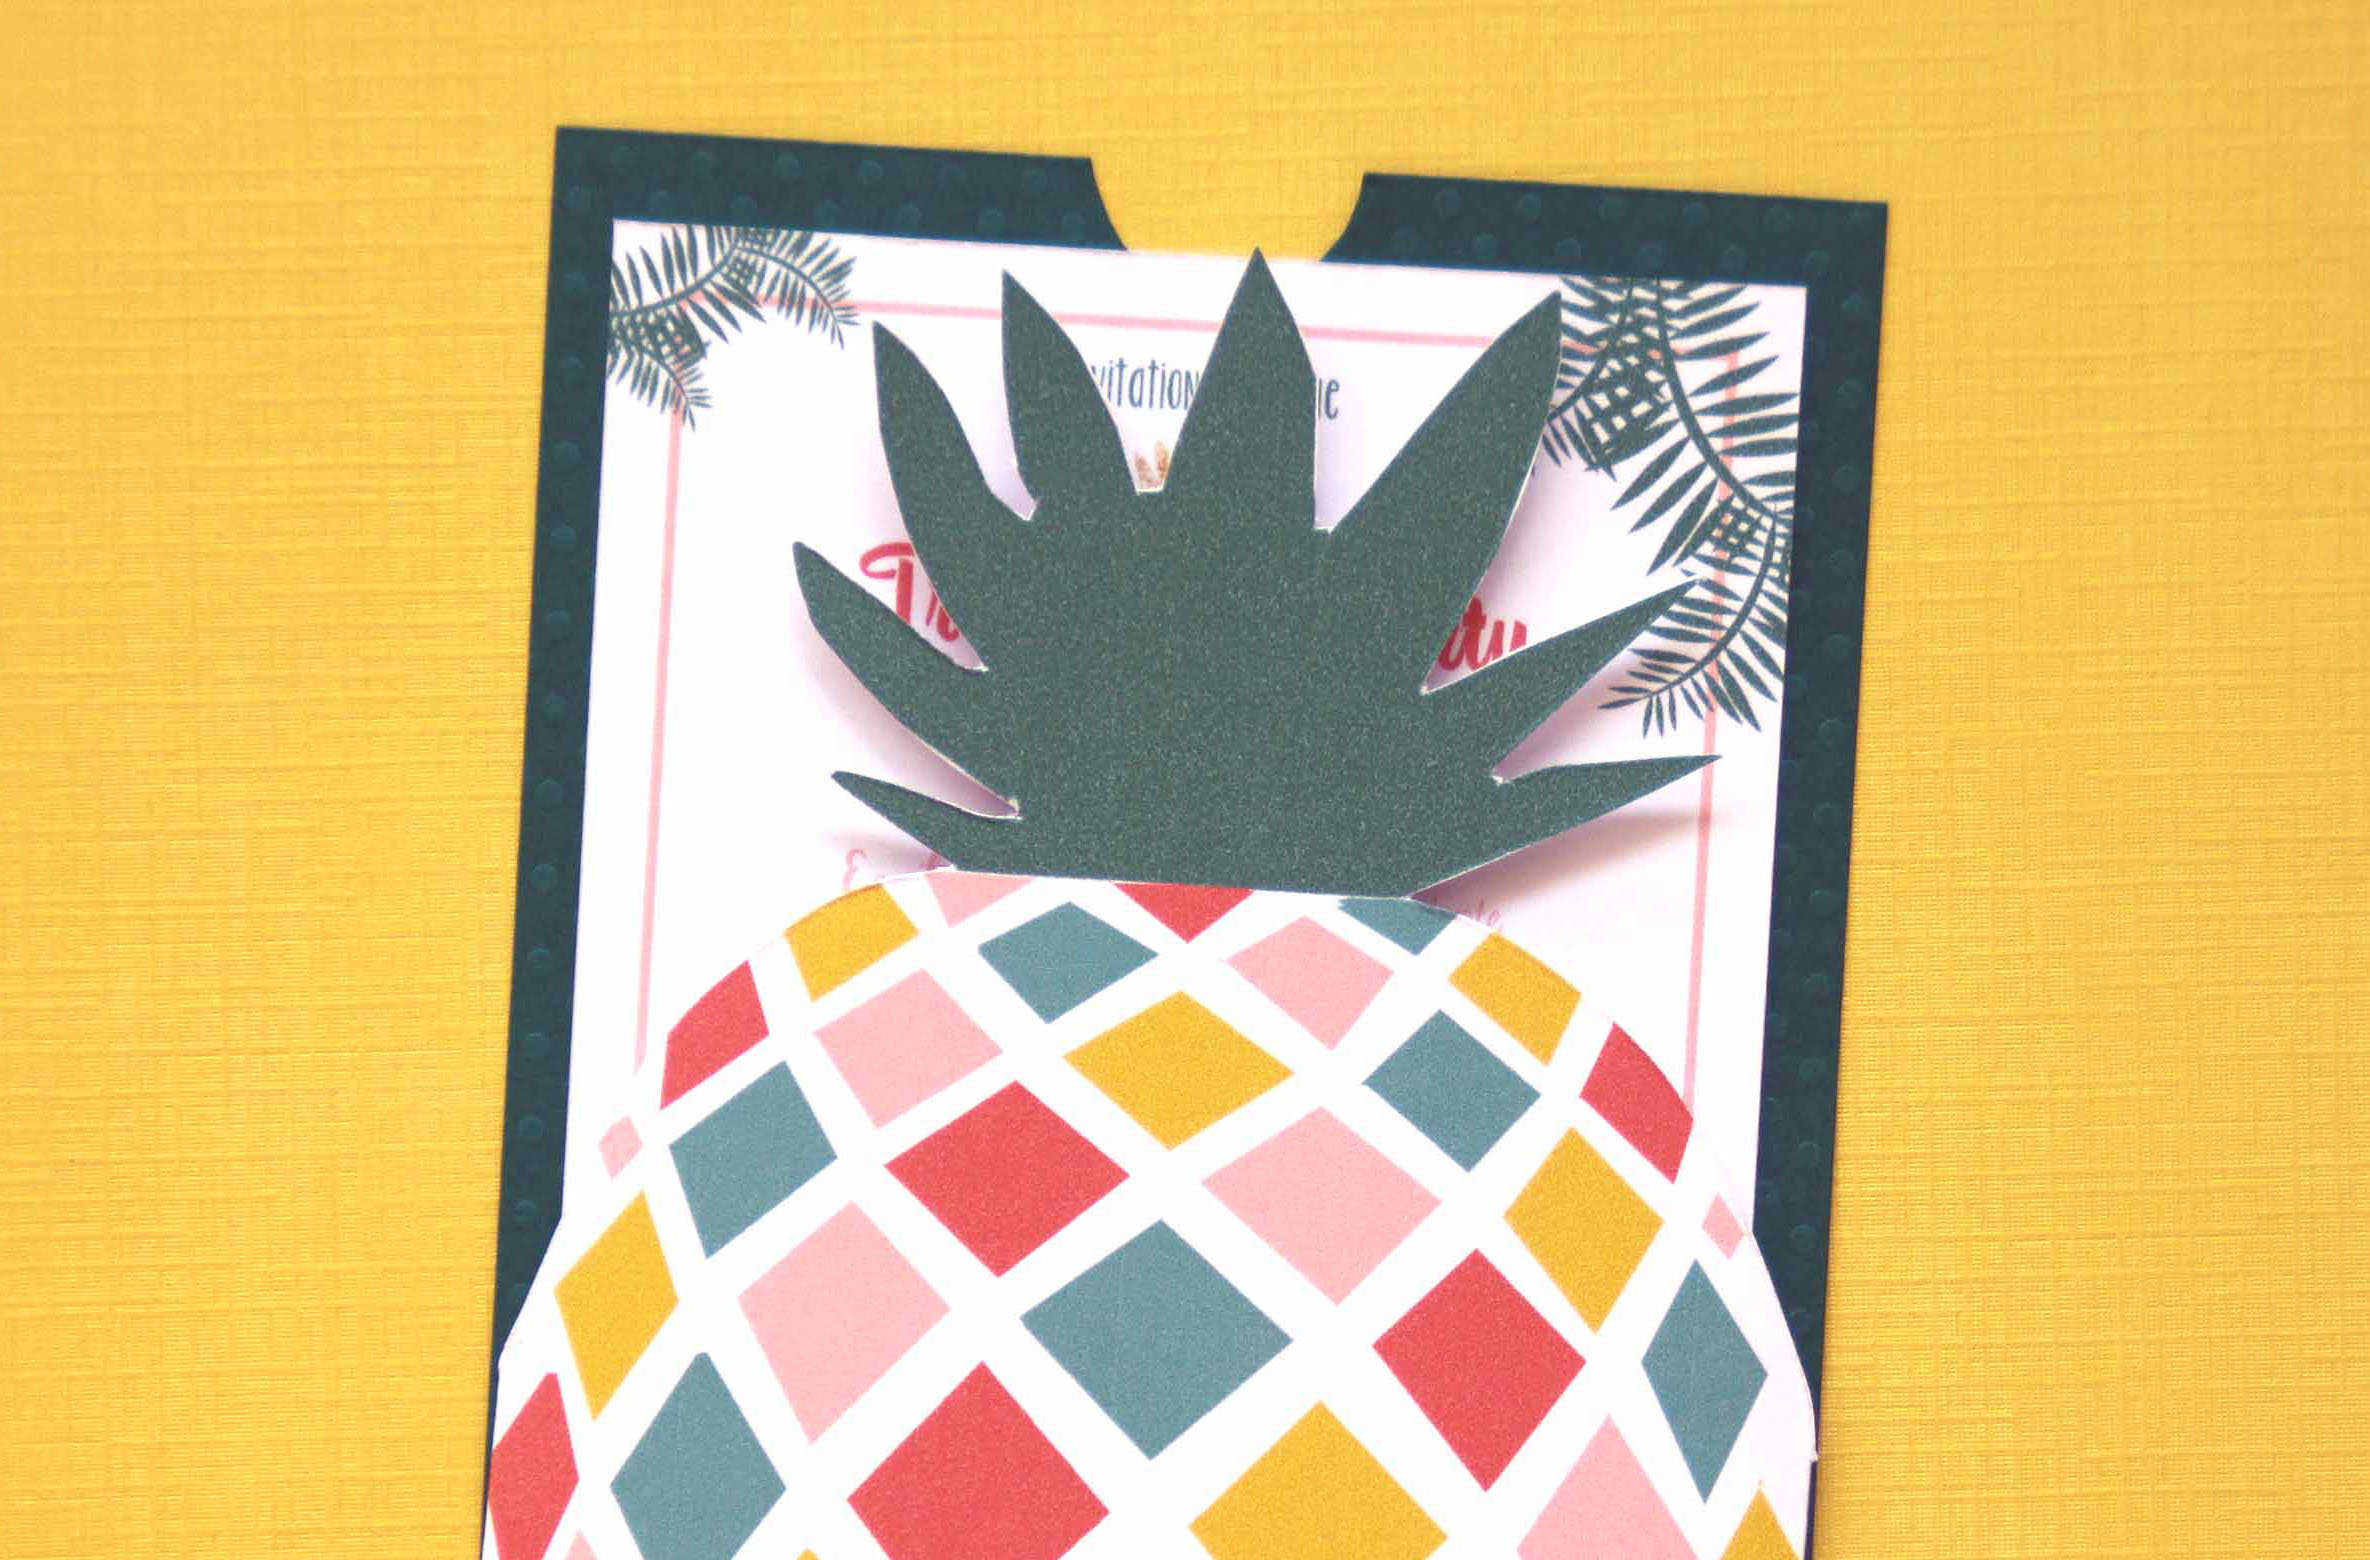 Medium invitation tropic chic party   21